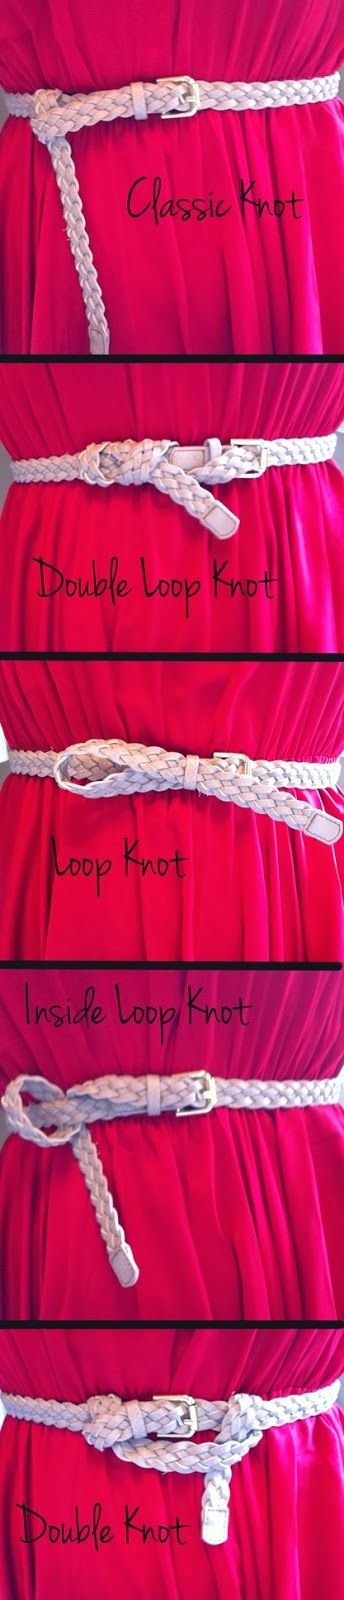 Belt knots fashion | Fashion and styles